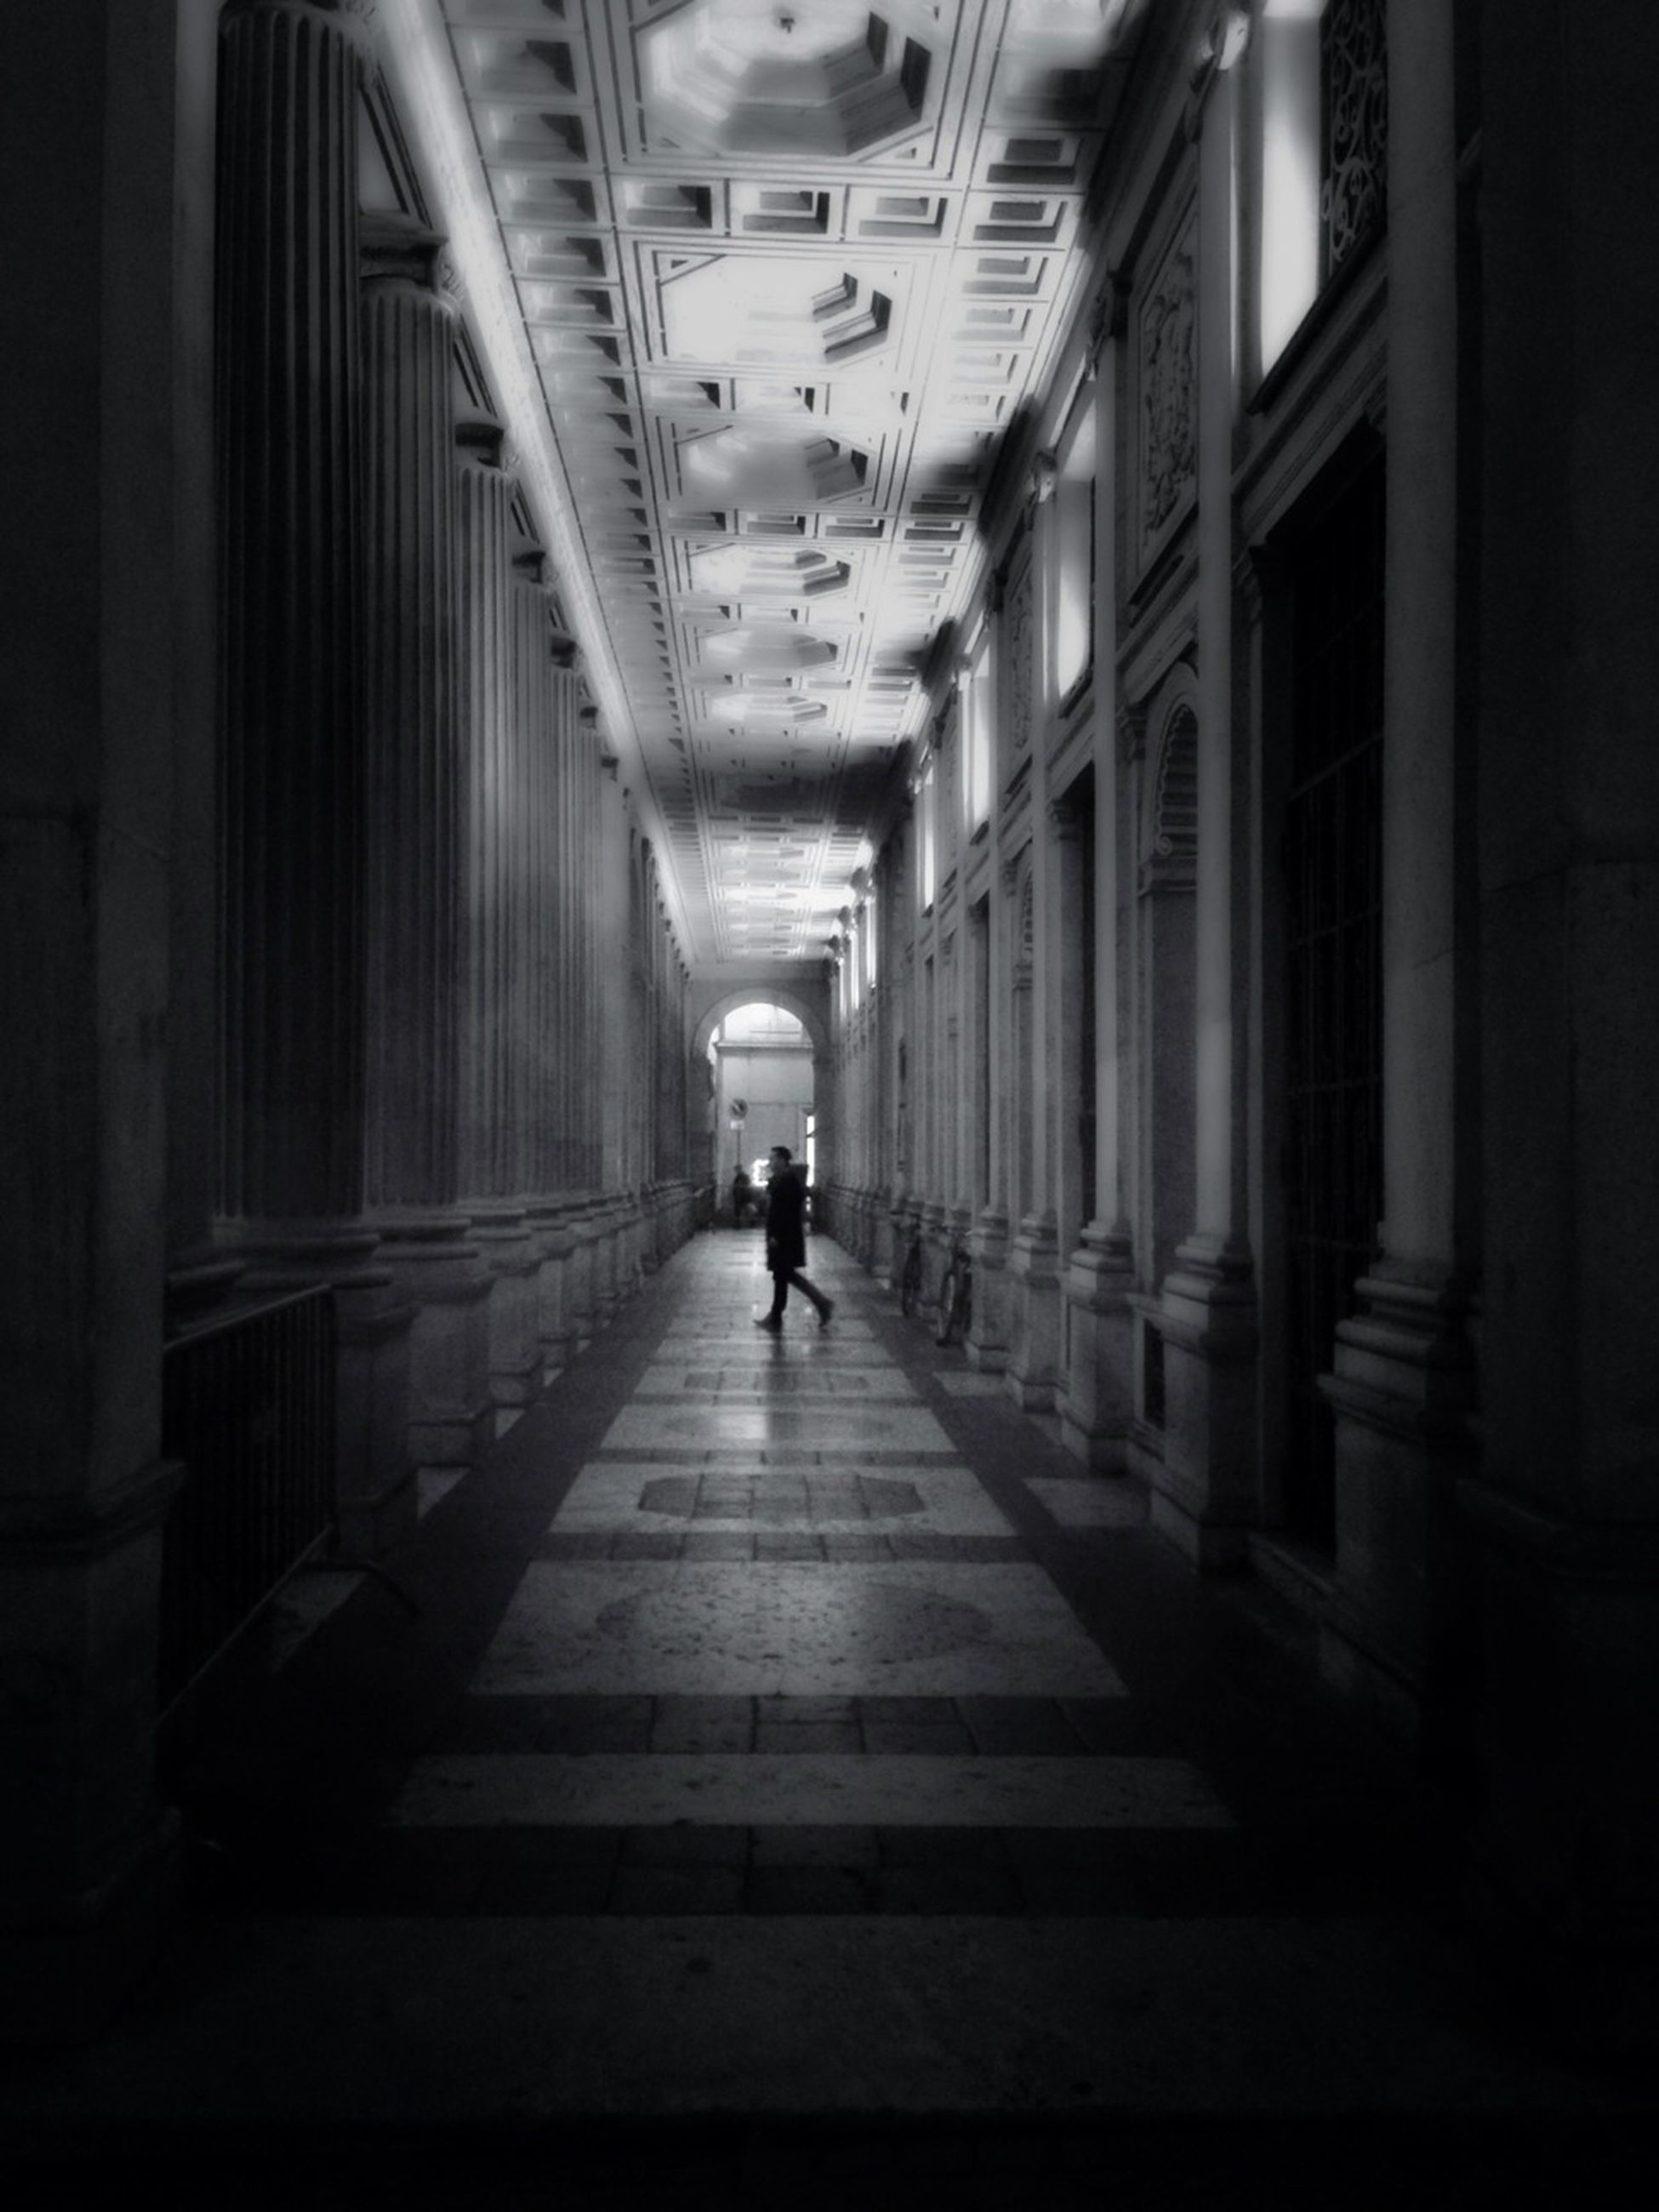 indoors, walking, architecture, full length, men, the way forward, built structure, rear view, lifestyles, person, diminishing perspective, city life, leisure activity, corridor, transportation, building, city